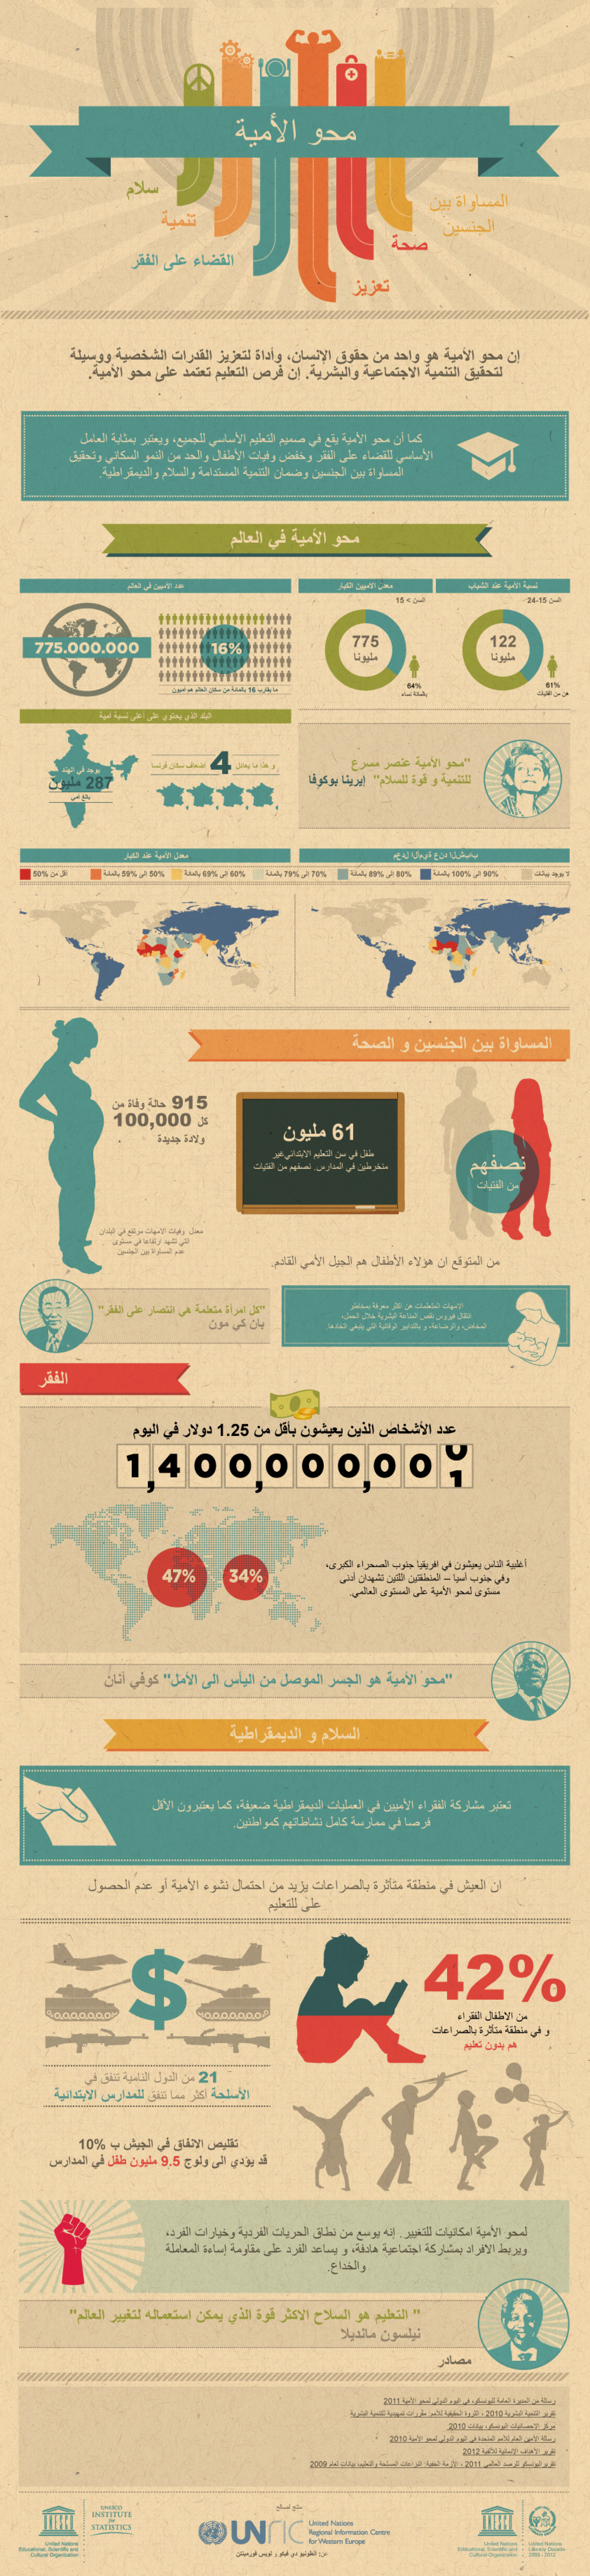 Literacy Arabic Infographic